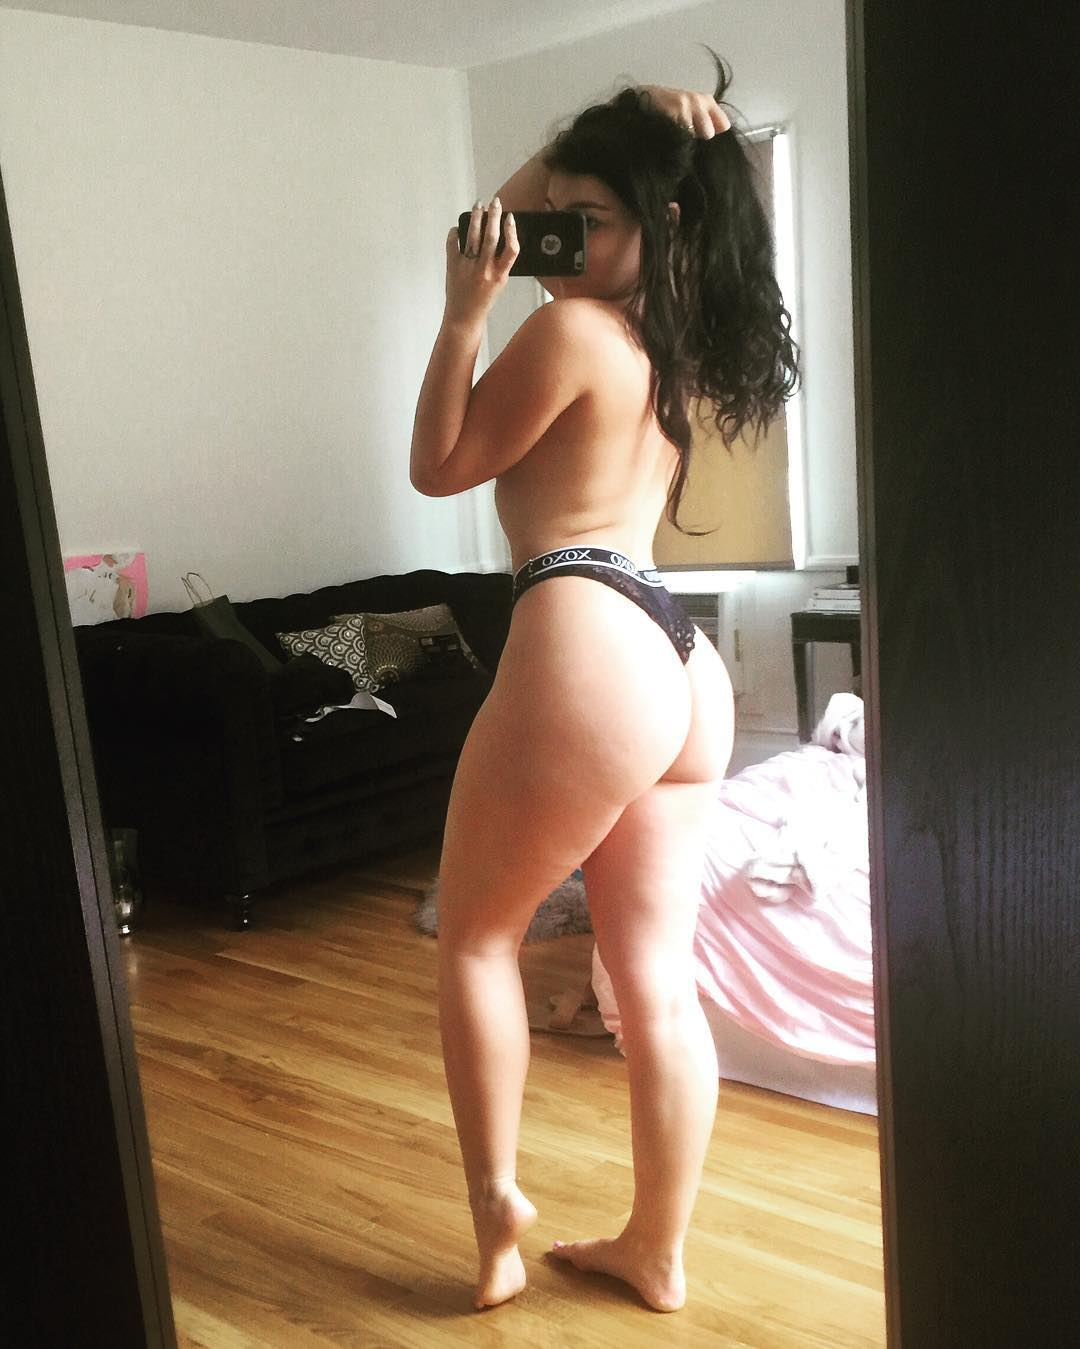 Emily Rinaudo nude topless in sexy thongs onlyfans - Emily Rinaudo Nude OnlyFans Oiled Tits Leaked Video